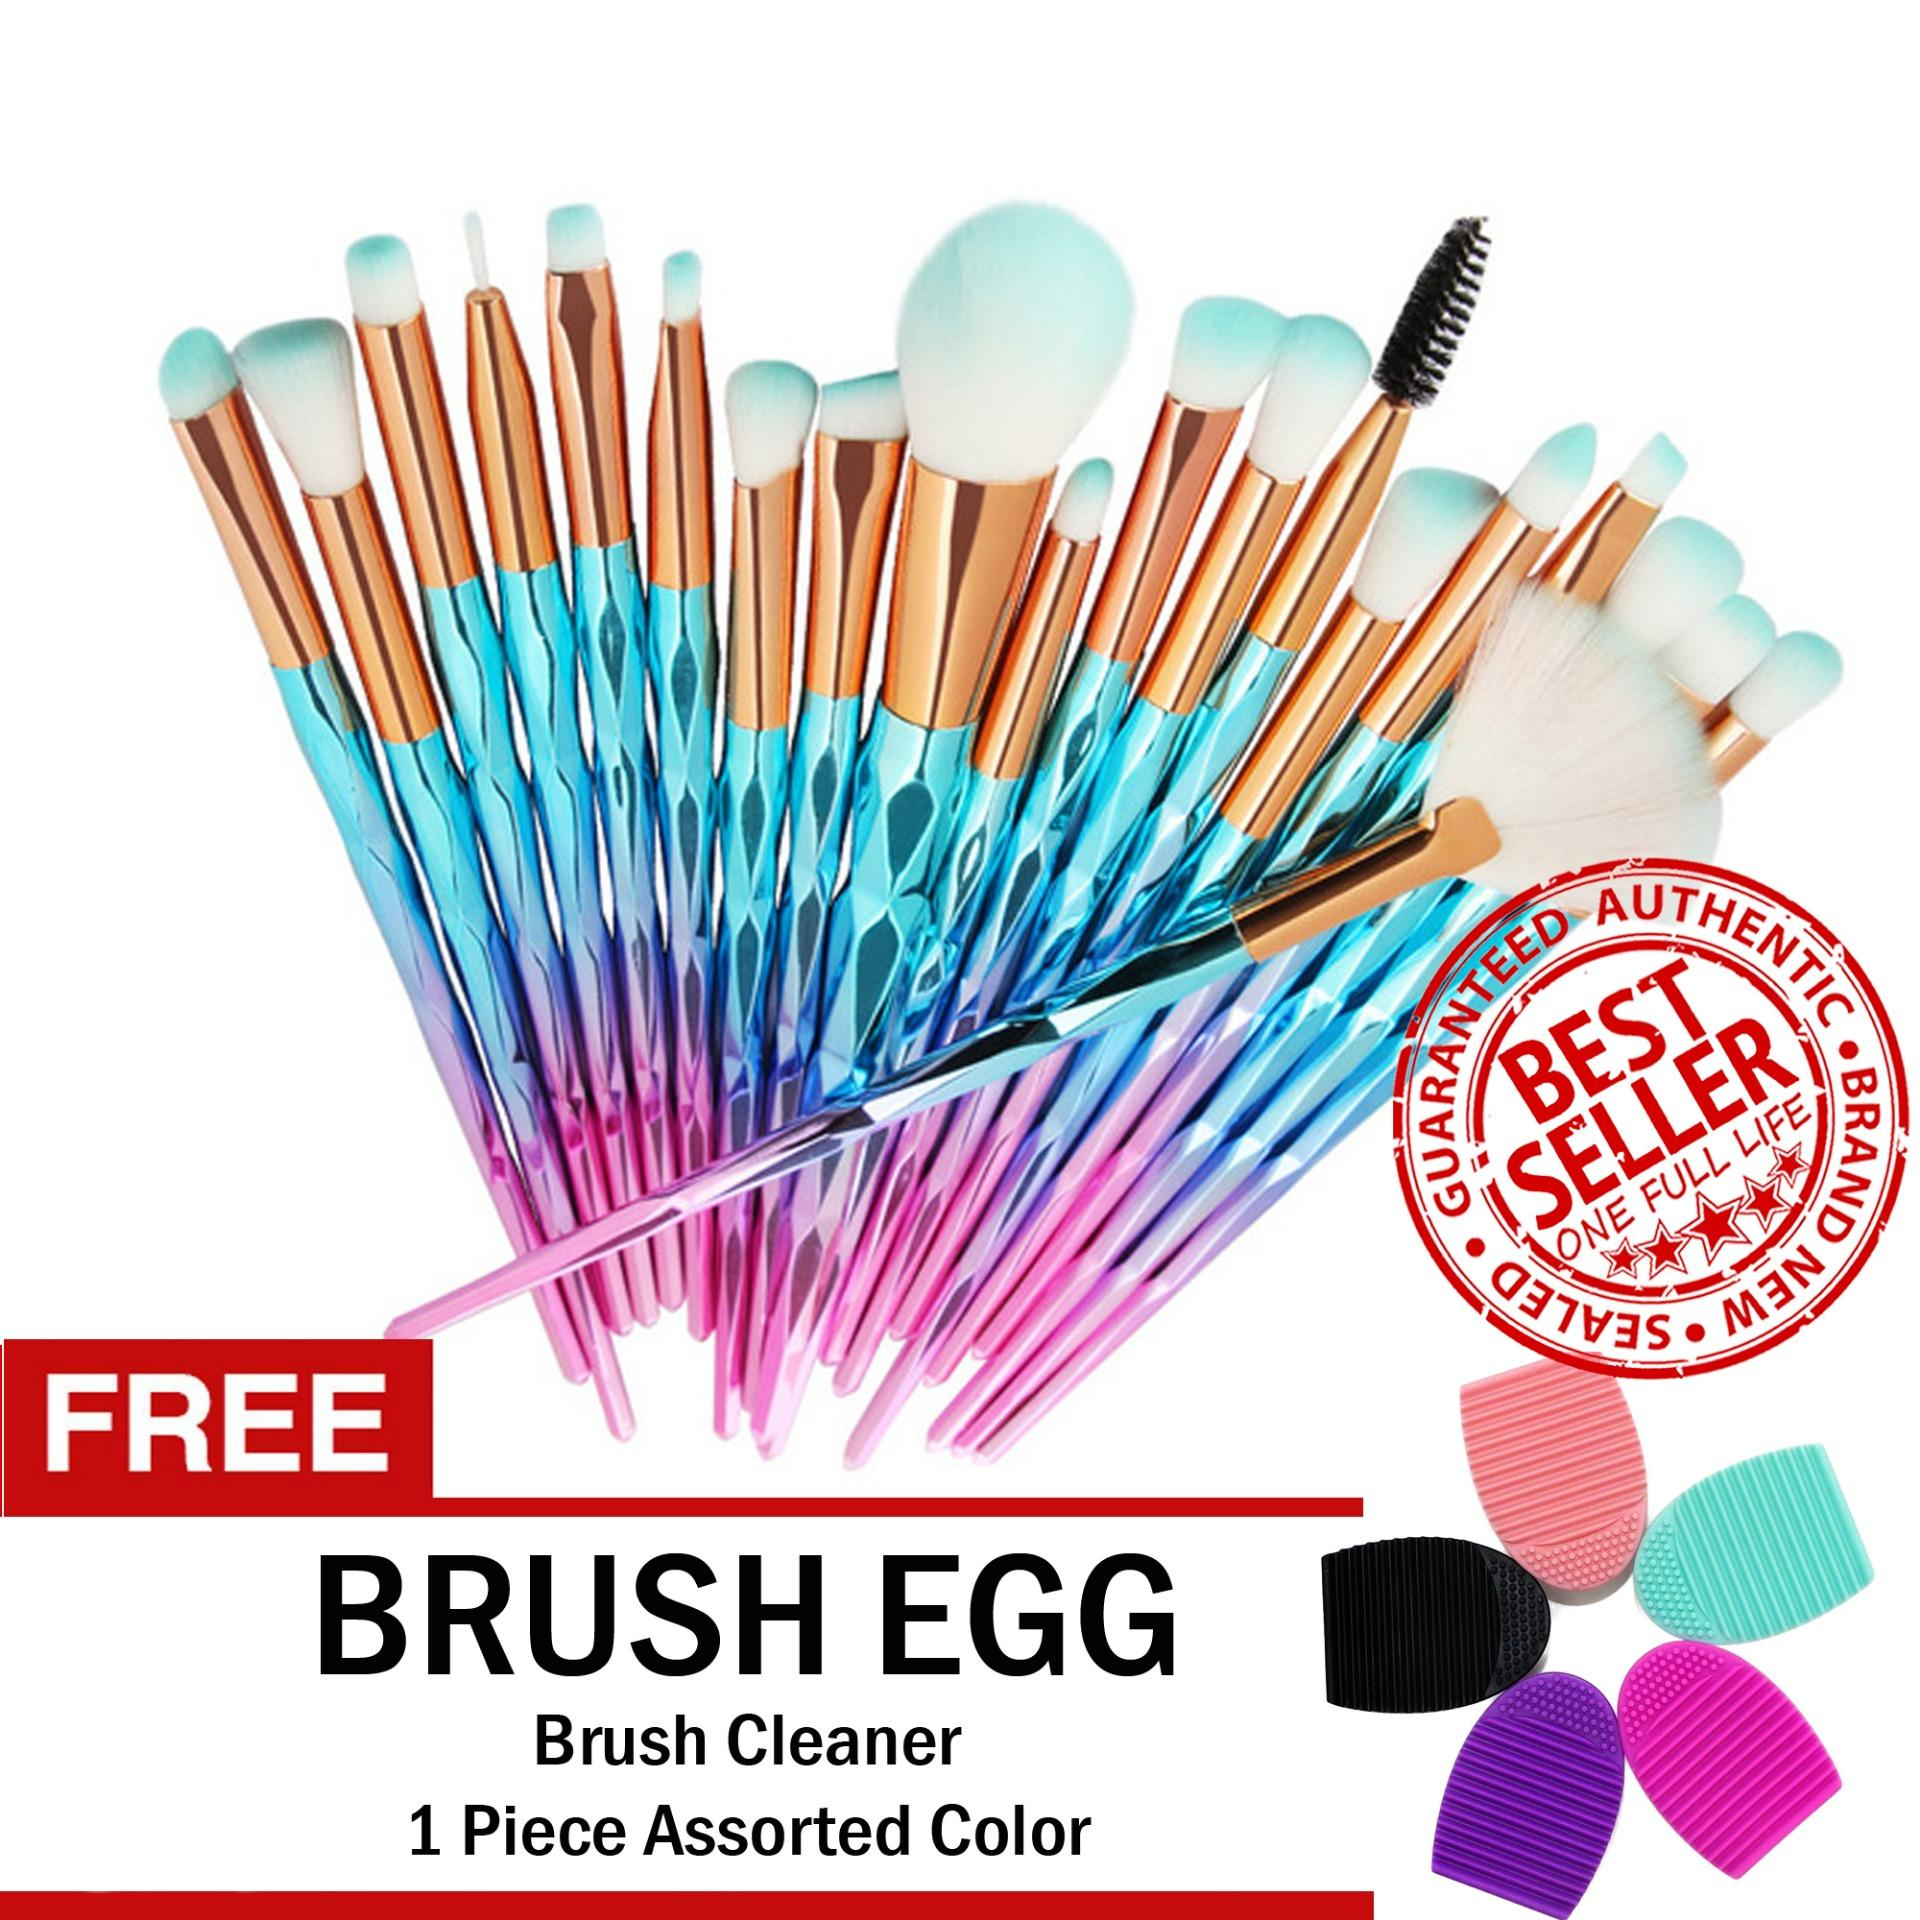 Unicorn Makeup Brush Set 20 MINT GREEN PINK FREE Brush Egg Brush Cleaner Philippines